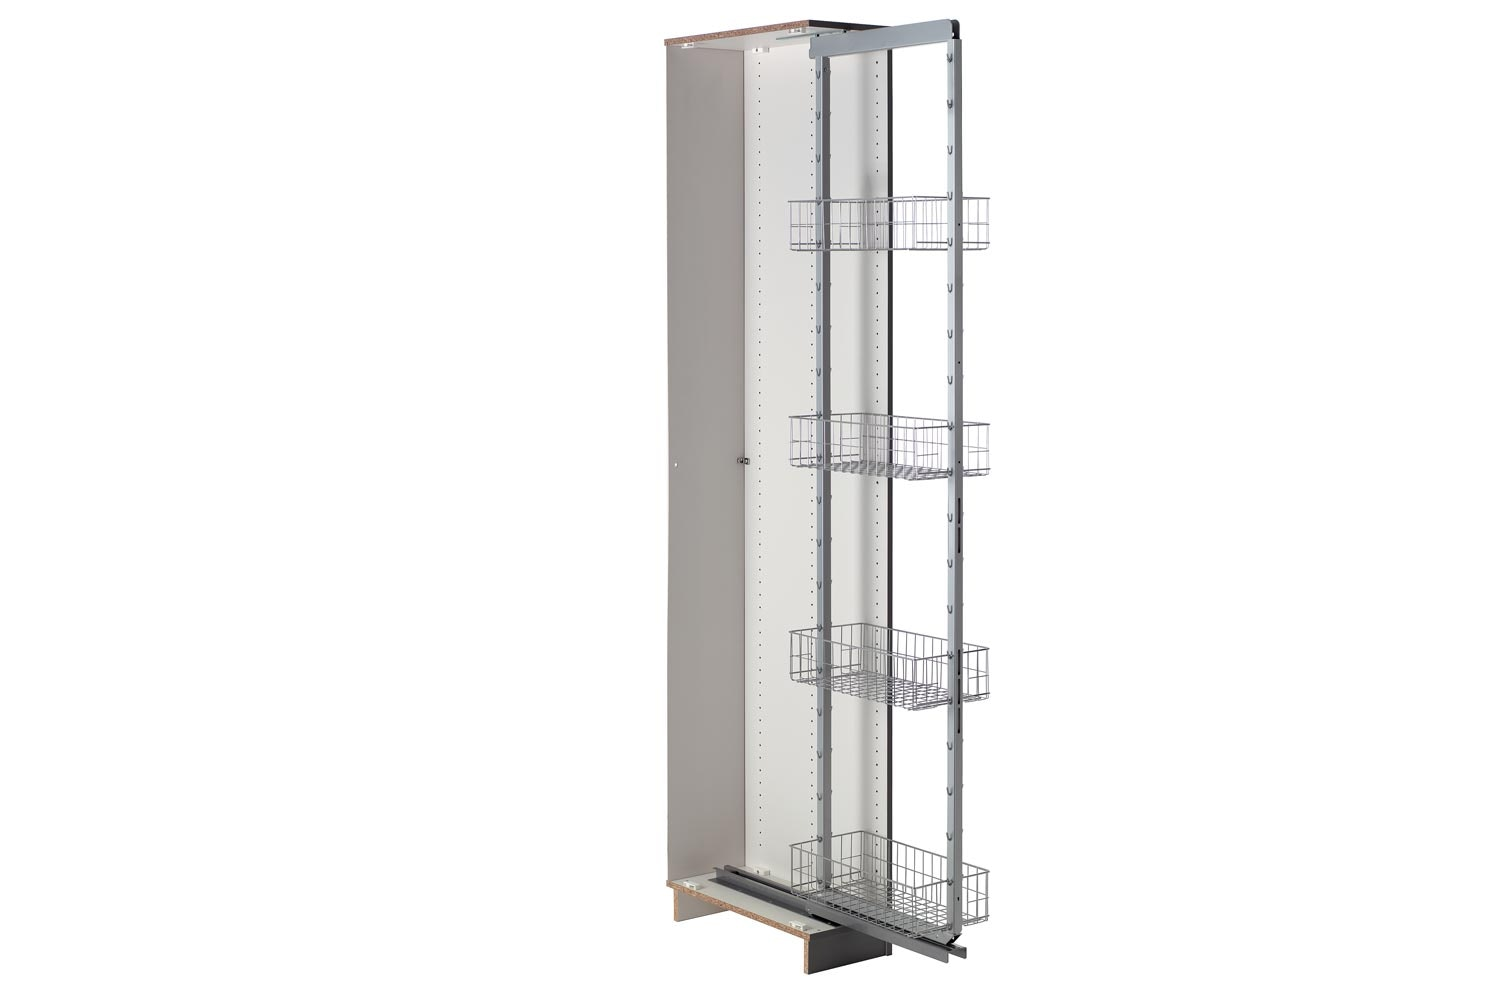 Jutzler 1 Pull-Out System